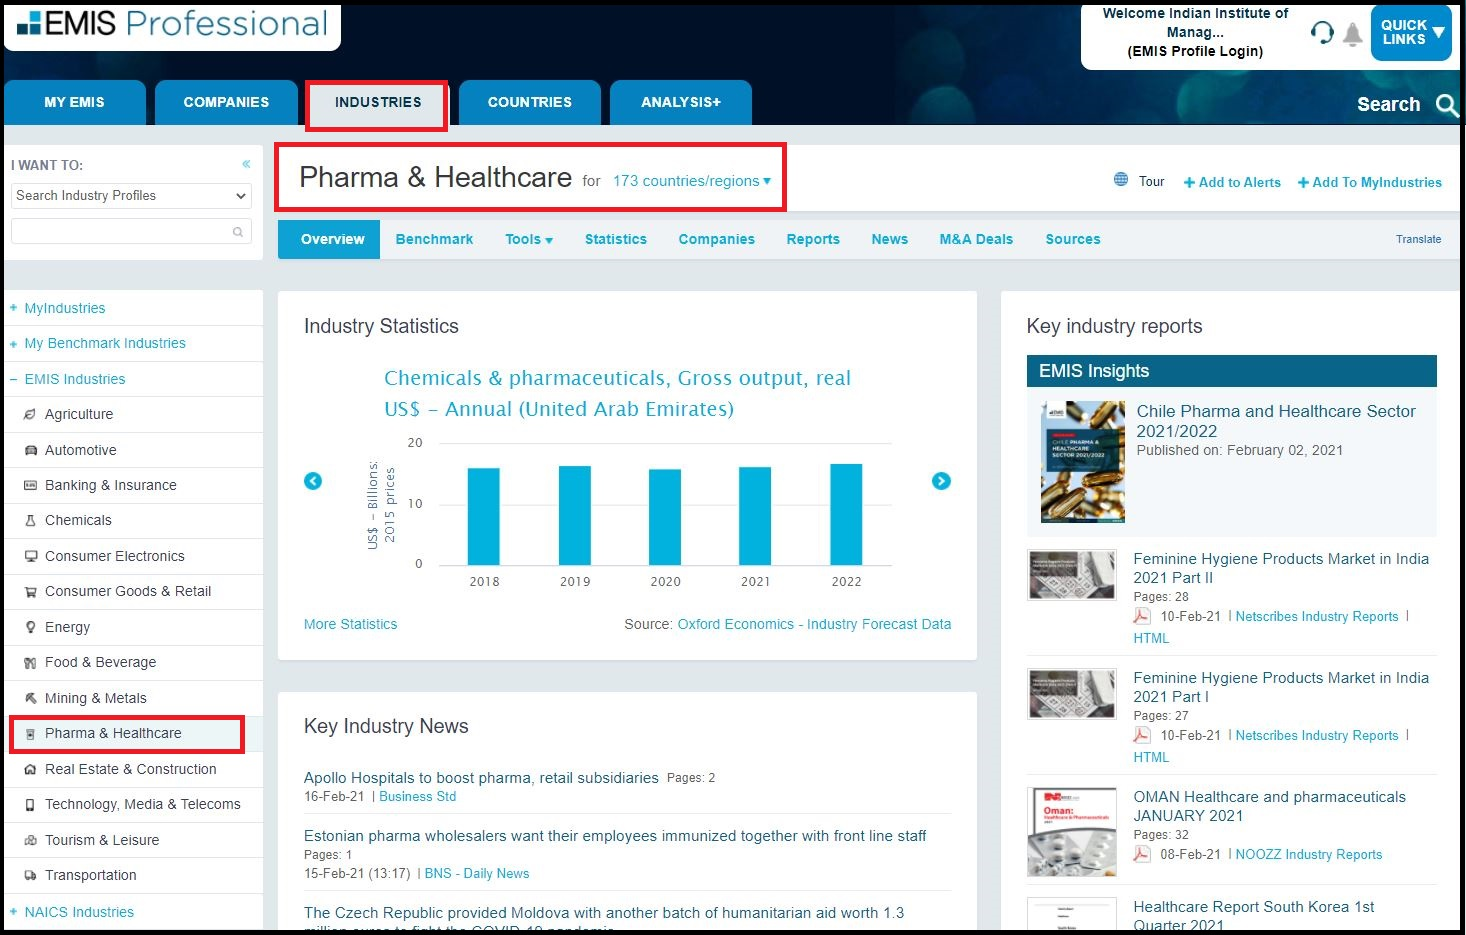 EMIS Intelligence (Professional) and Select Industry Analysis then Click on Pharma & Healthcare